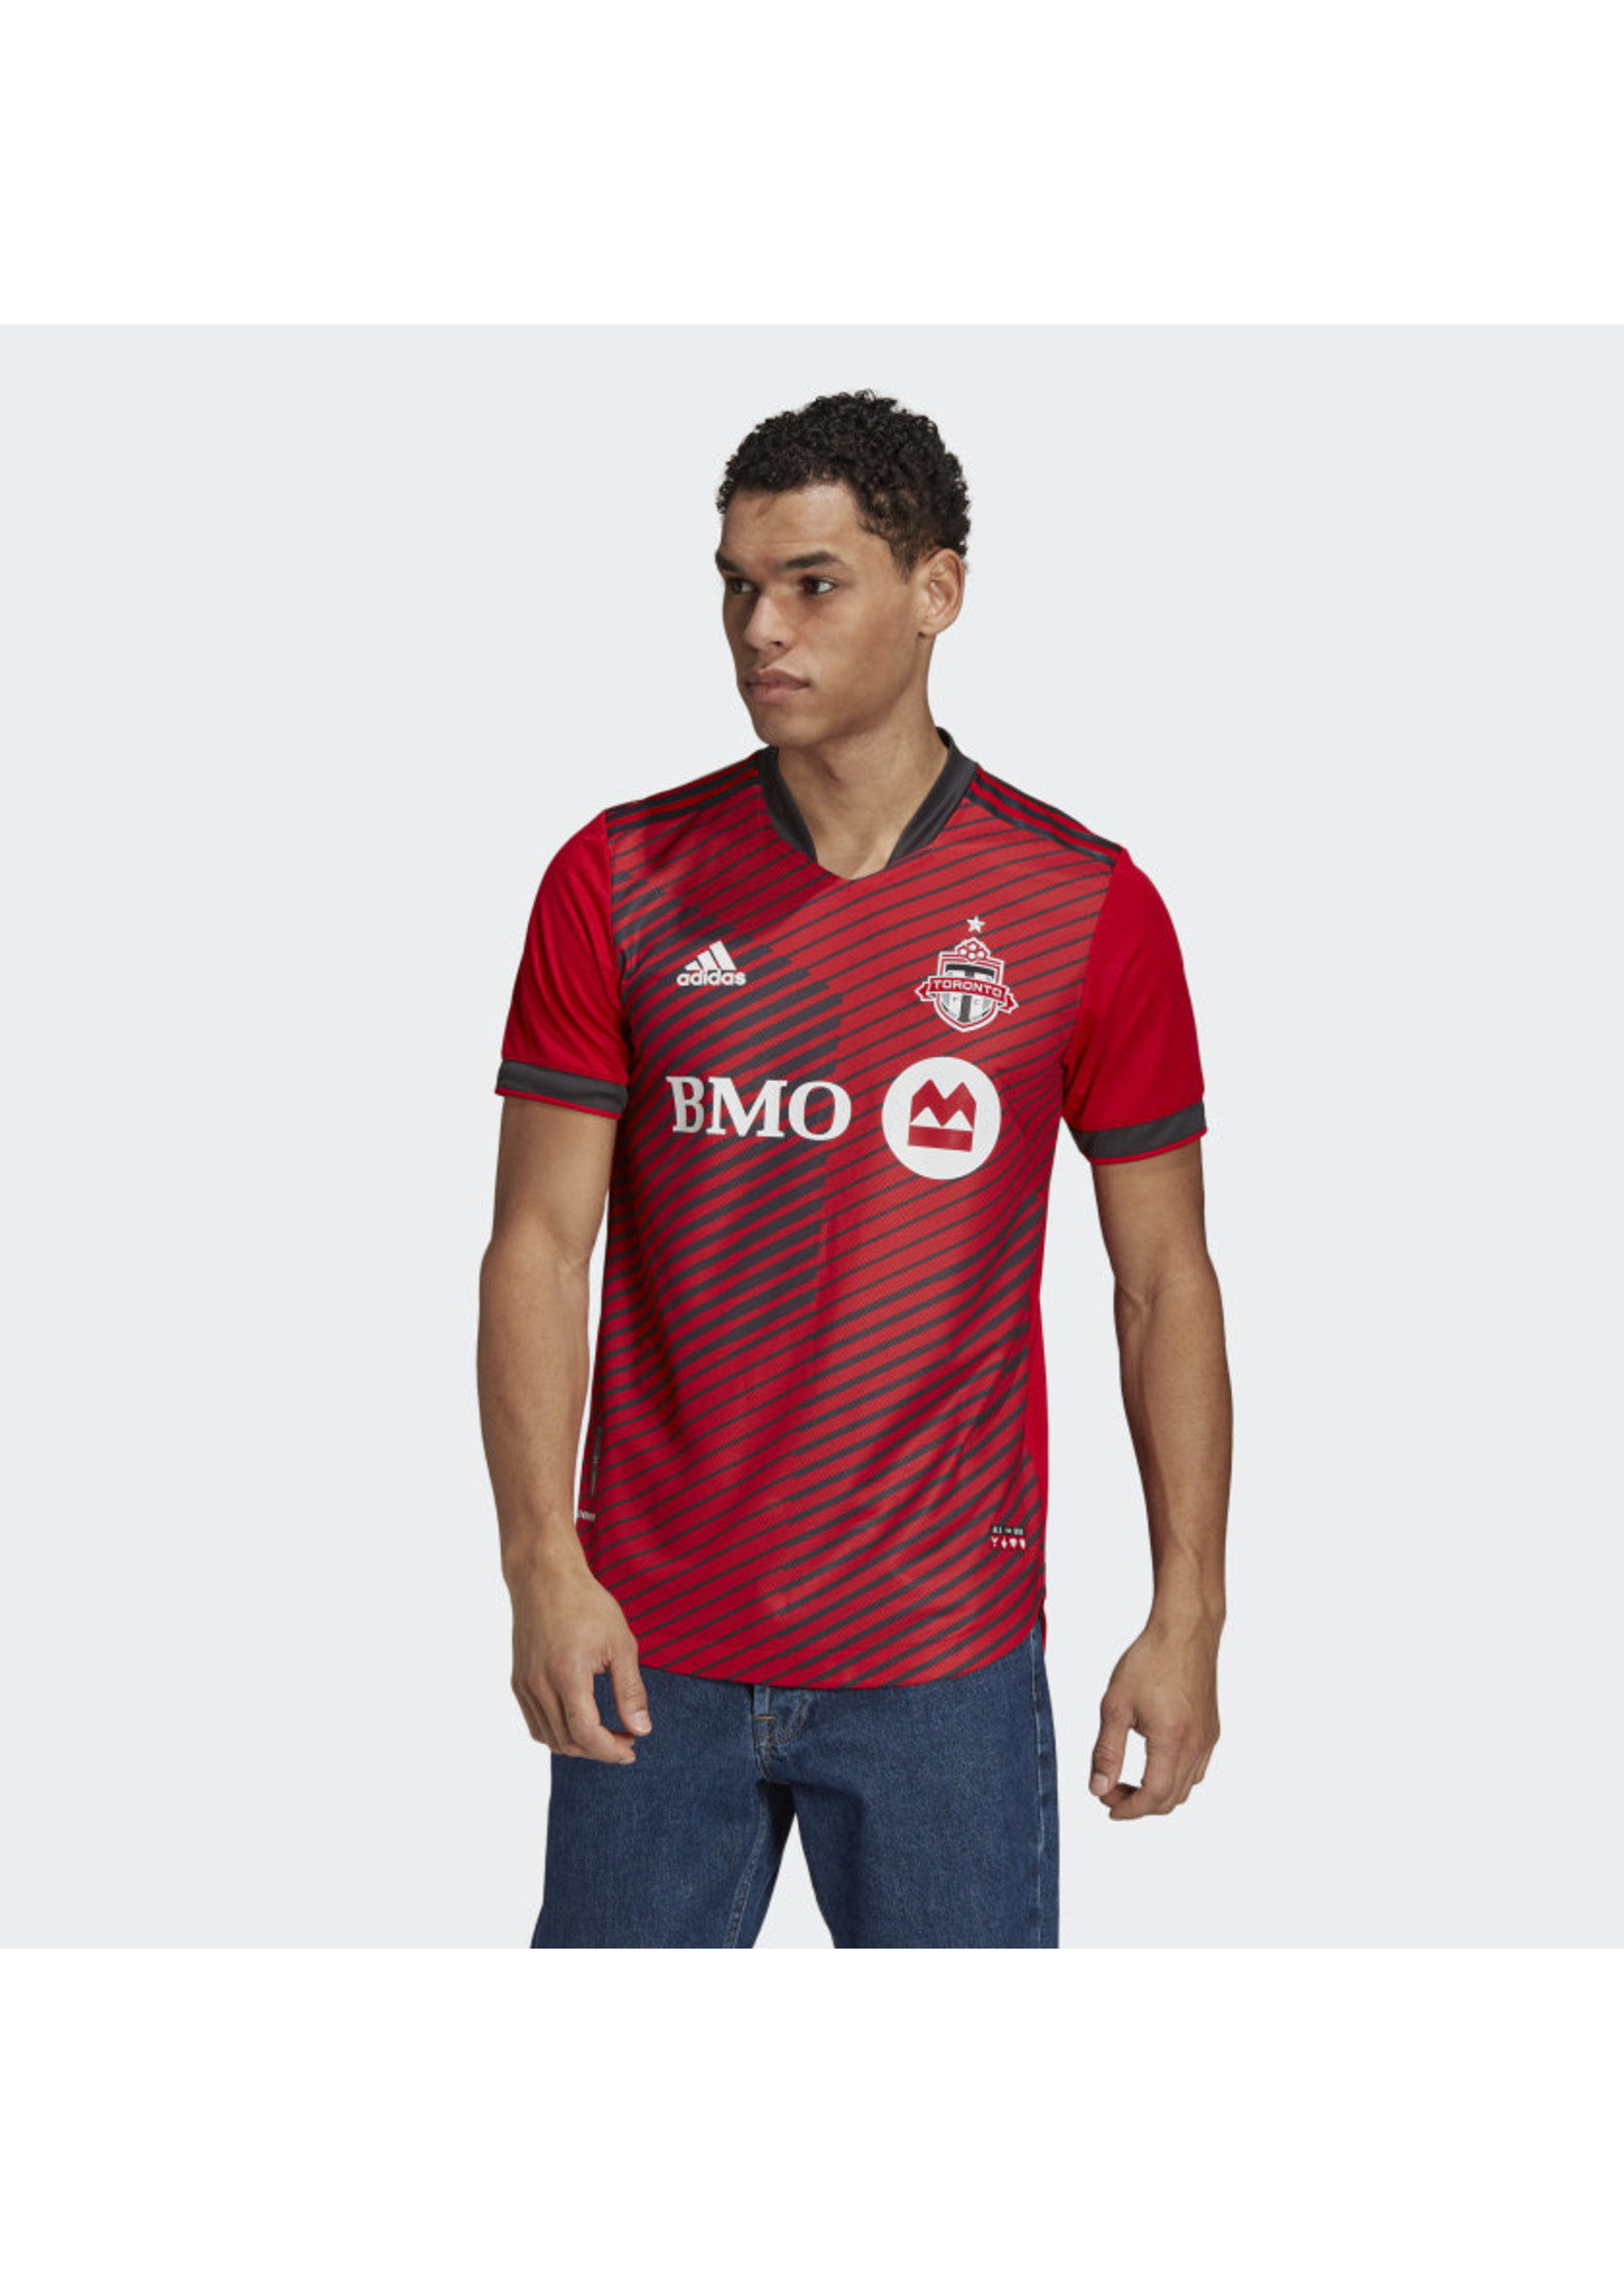 Adidas Toronto FC 21/22 Authentic Home Jersey Adult